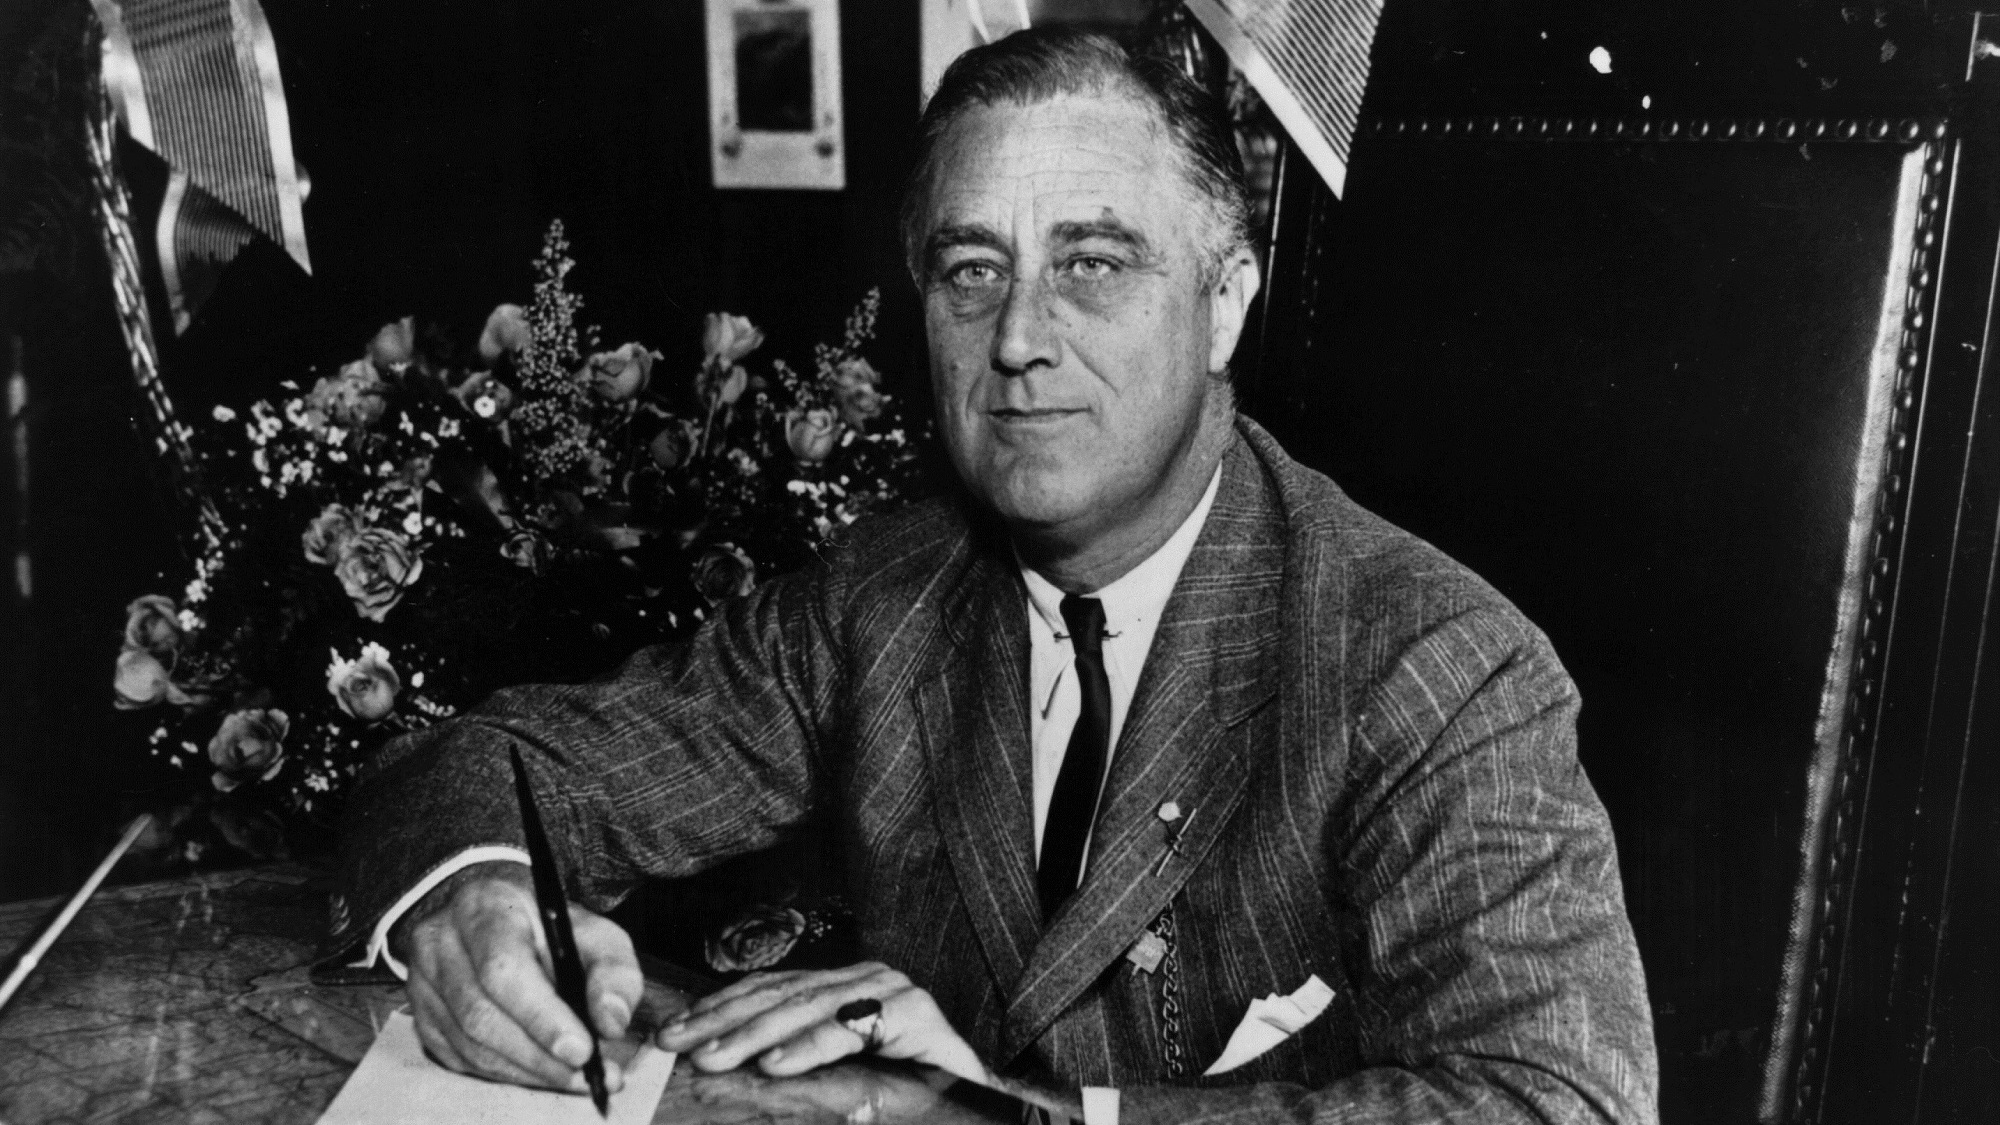 an introduction to the life and politics of franklin d roosevelt Franklin d roosevelt served for 12 years as the 32nd president of the united states he was elected four times beginning in 1932 roosevelt led the country through two of the greatest crises of the 20th century: the great depression and world war ii.